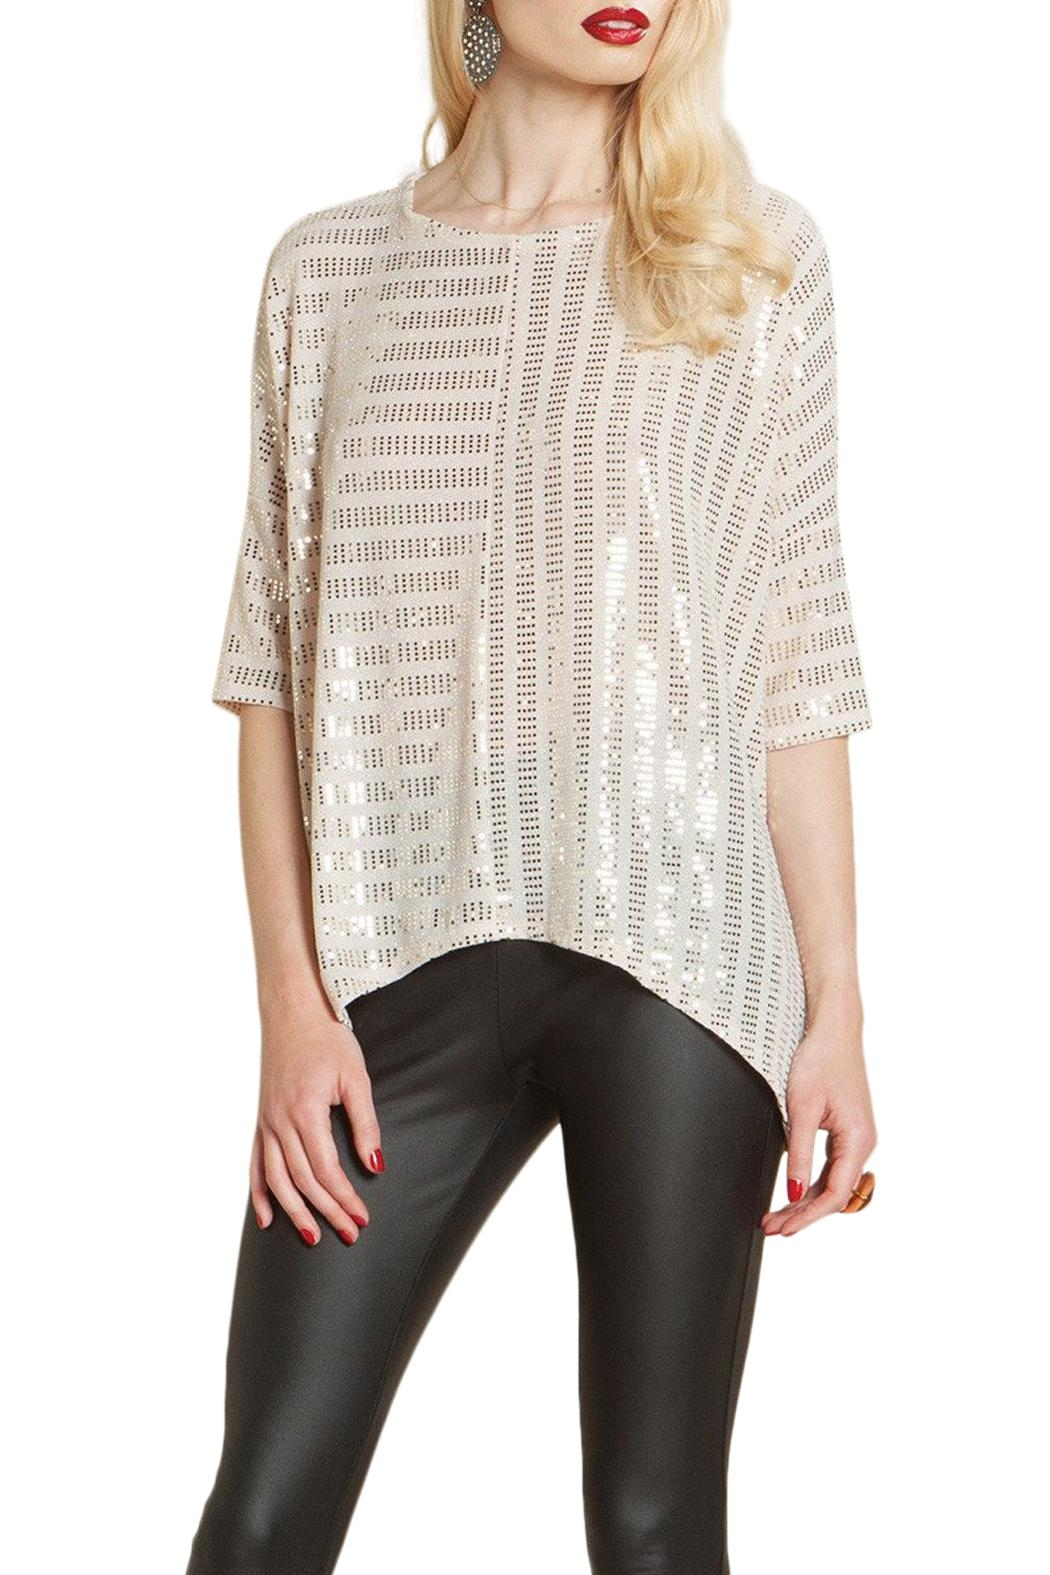 34e310172388c6 Clara Sunwoo Shimmer Sequin Top from Iowa by Elegance Boutique ...